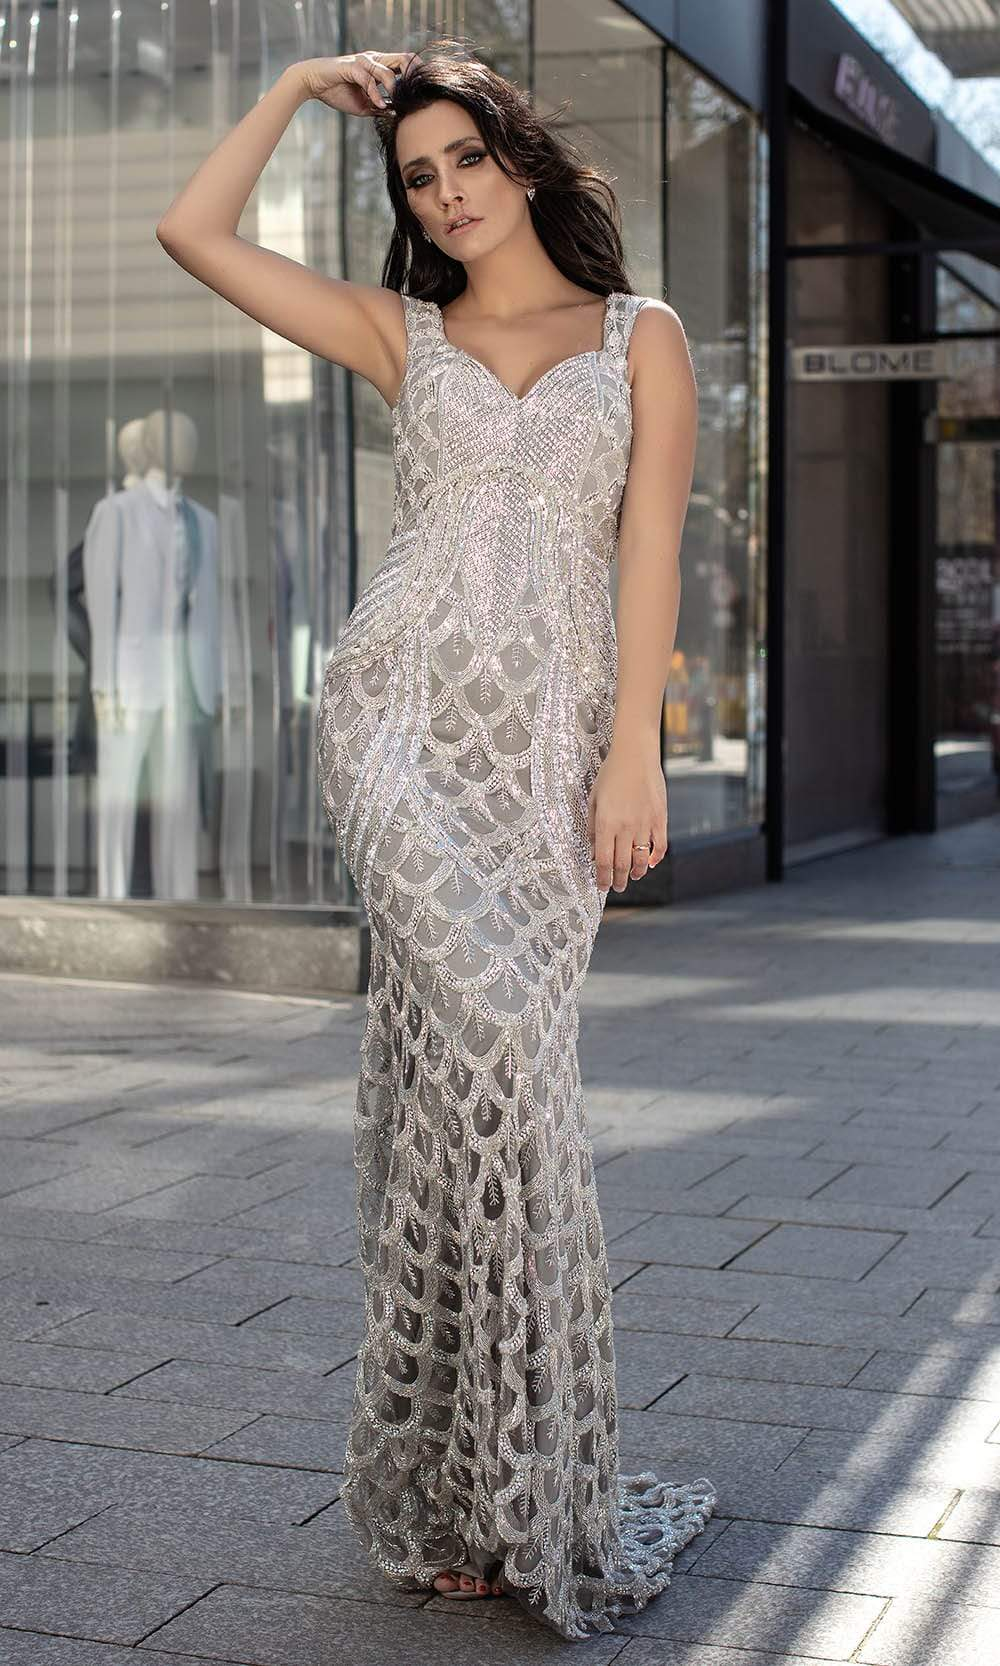 Chic and Holland - HF1518 Rhinestone Embellished Sleeveless Gown from Chic and Holland